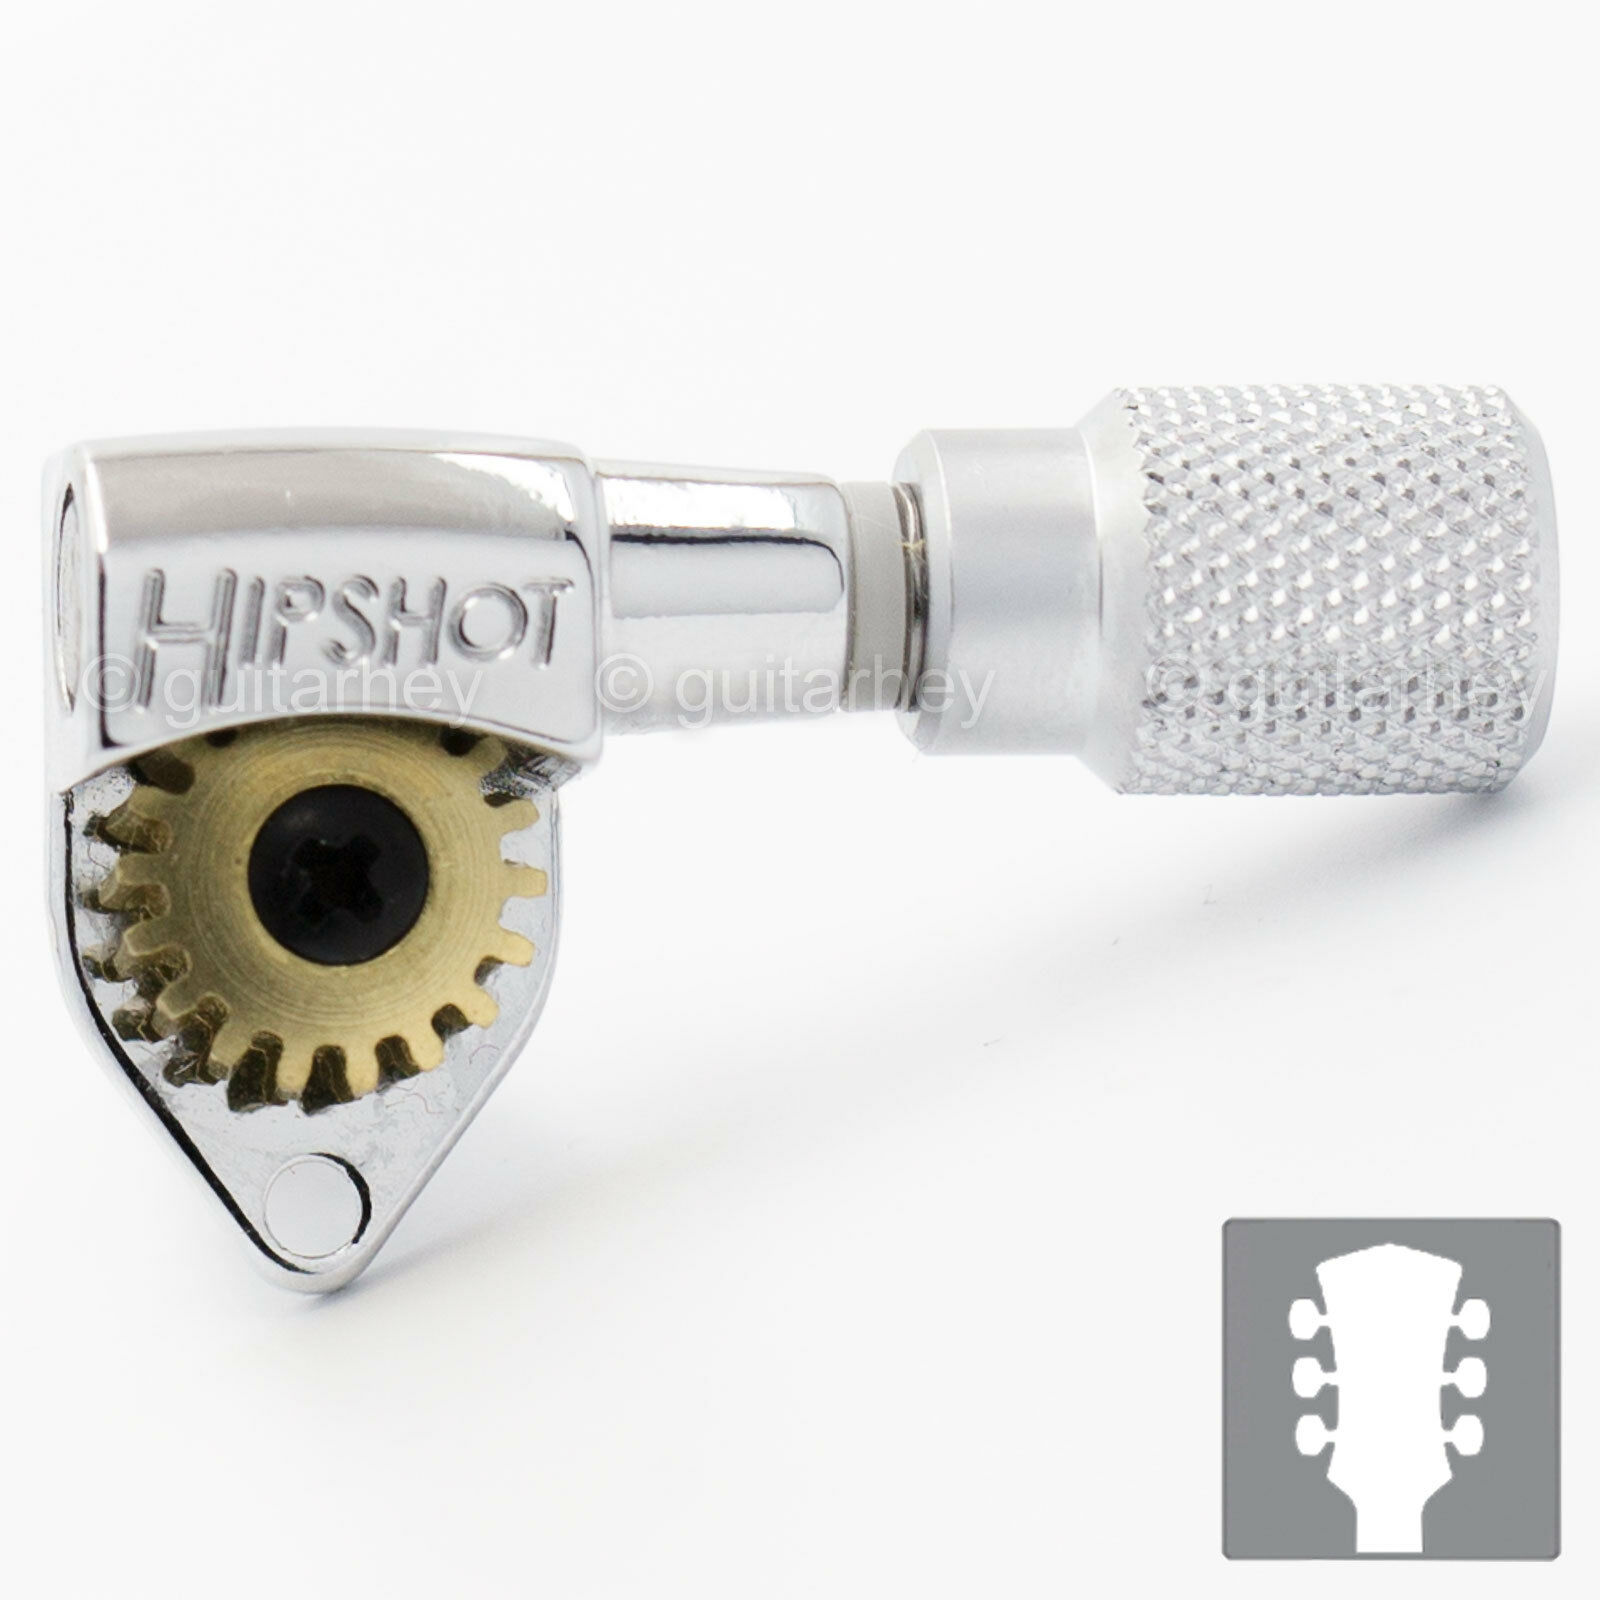 NEW Hipshot Classic Tuner KNURLED KNURLED KNURLED SK1S Buttons w/ Plates for PRS 3x3 - CHROME 310807